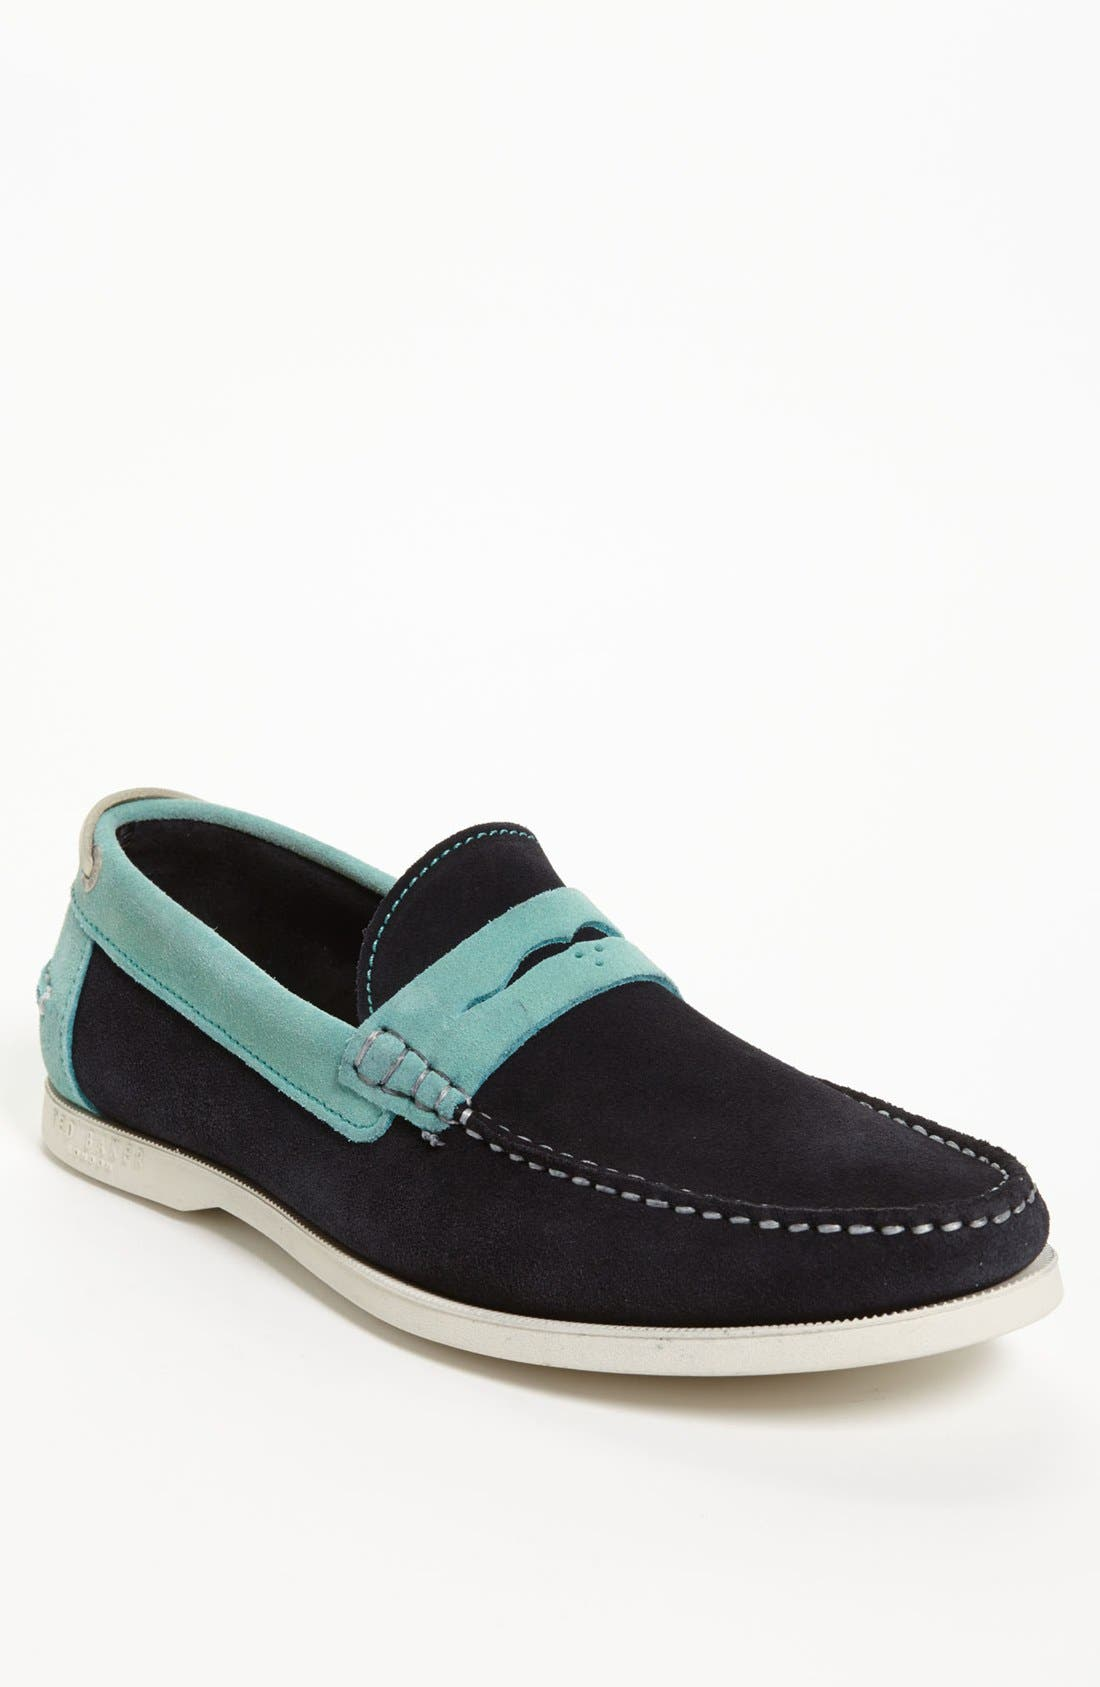 Alternate Image 1 Selected - Ted Baker London 'Seelo' Penny Loafer (Online Only)